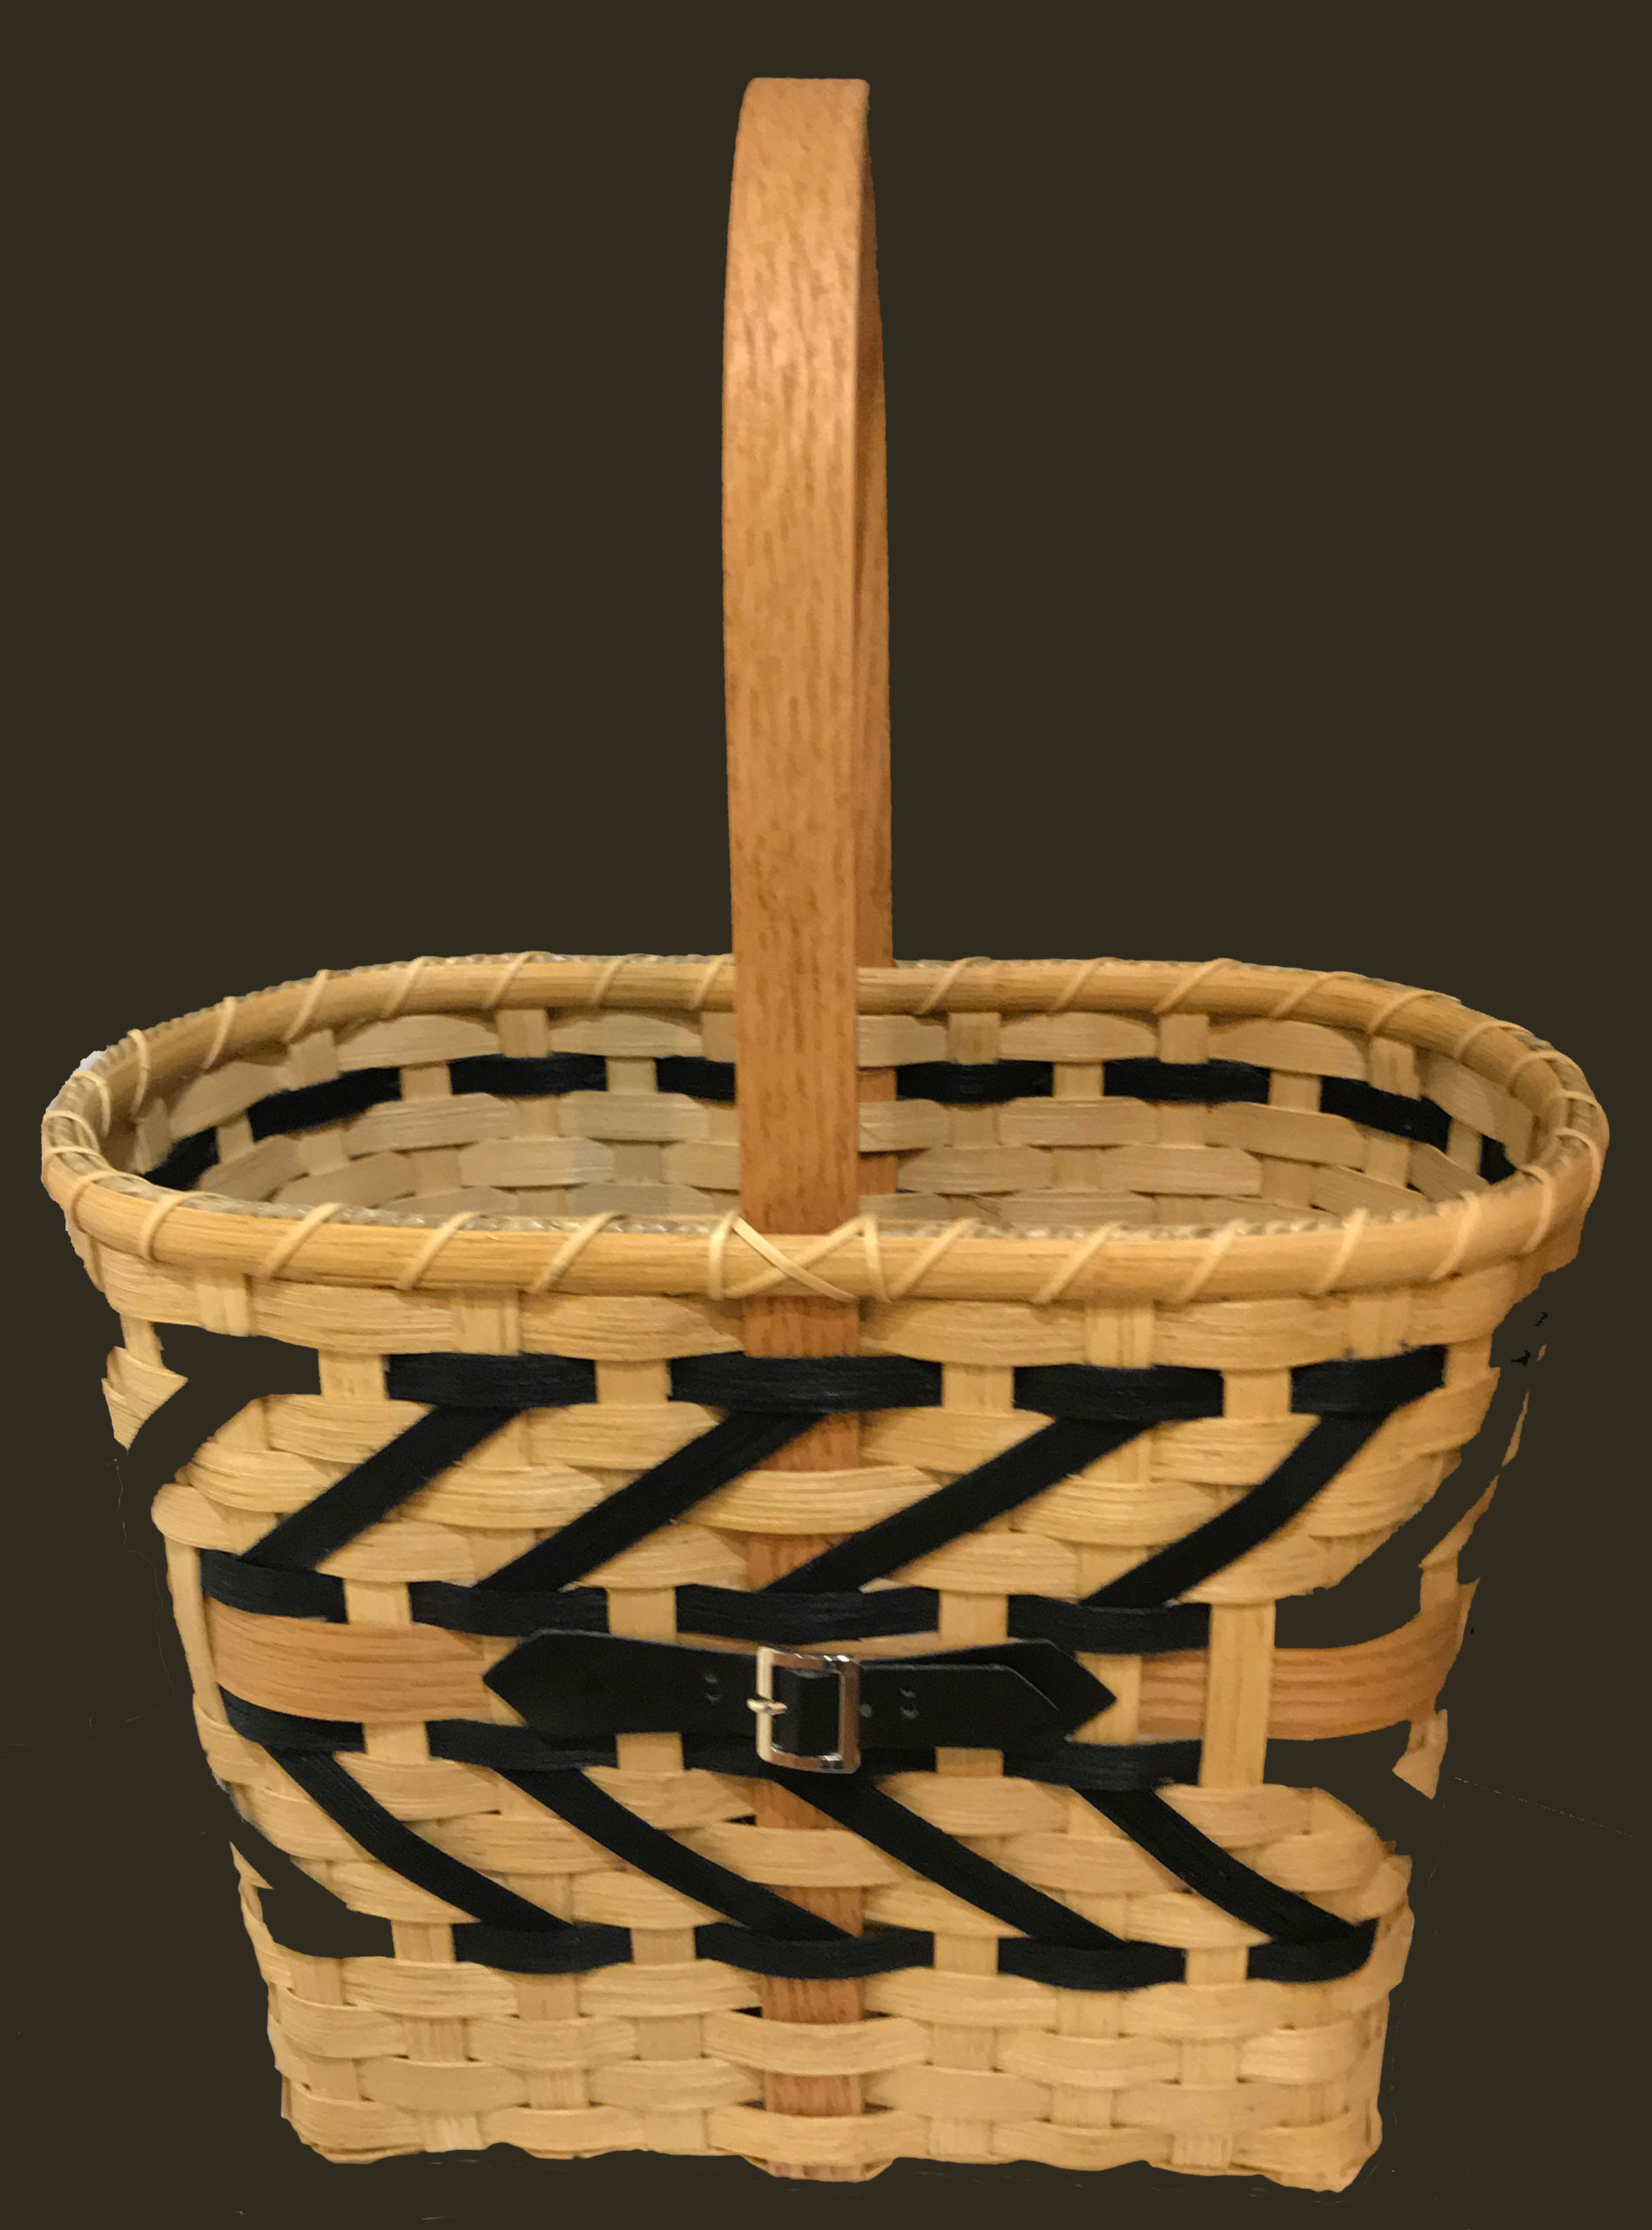 Buckle Up by Kay Johnson, Basketry, $55